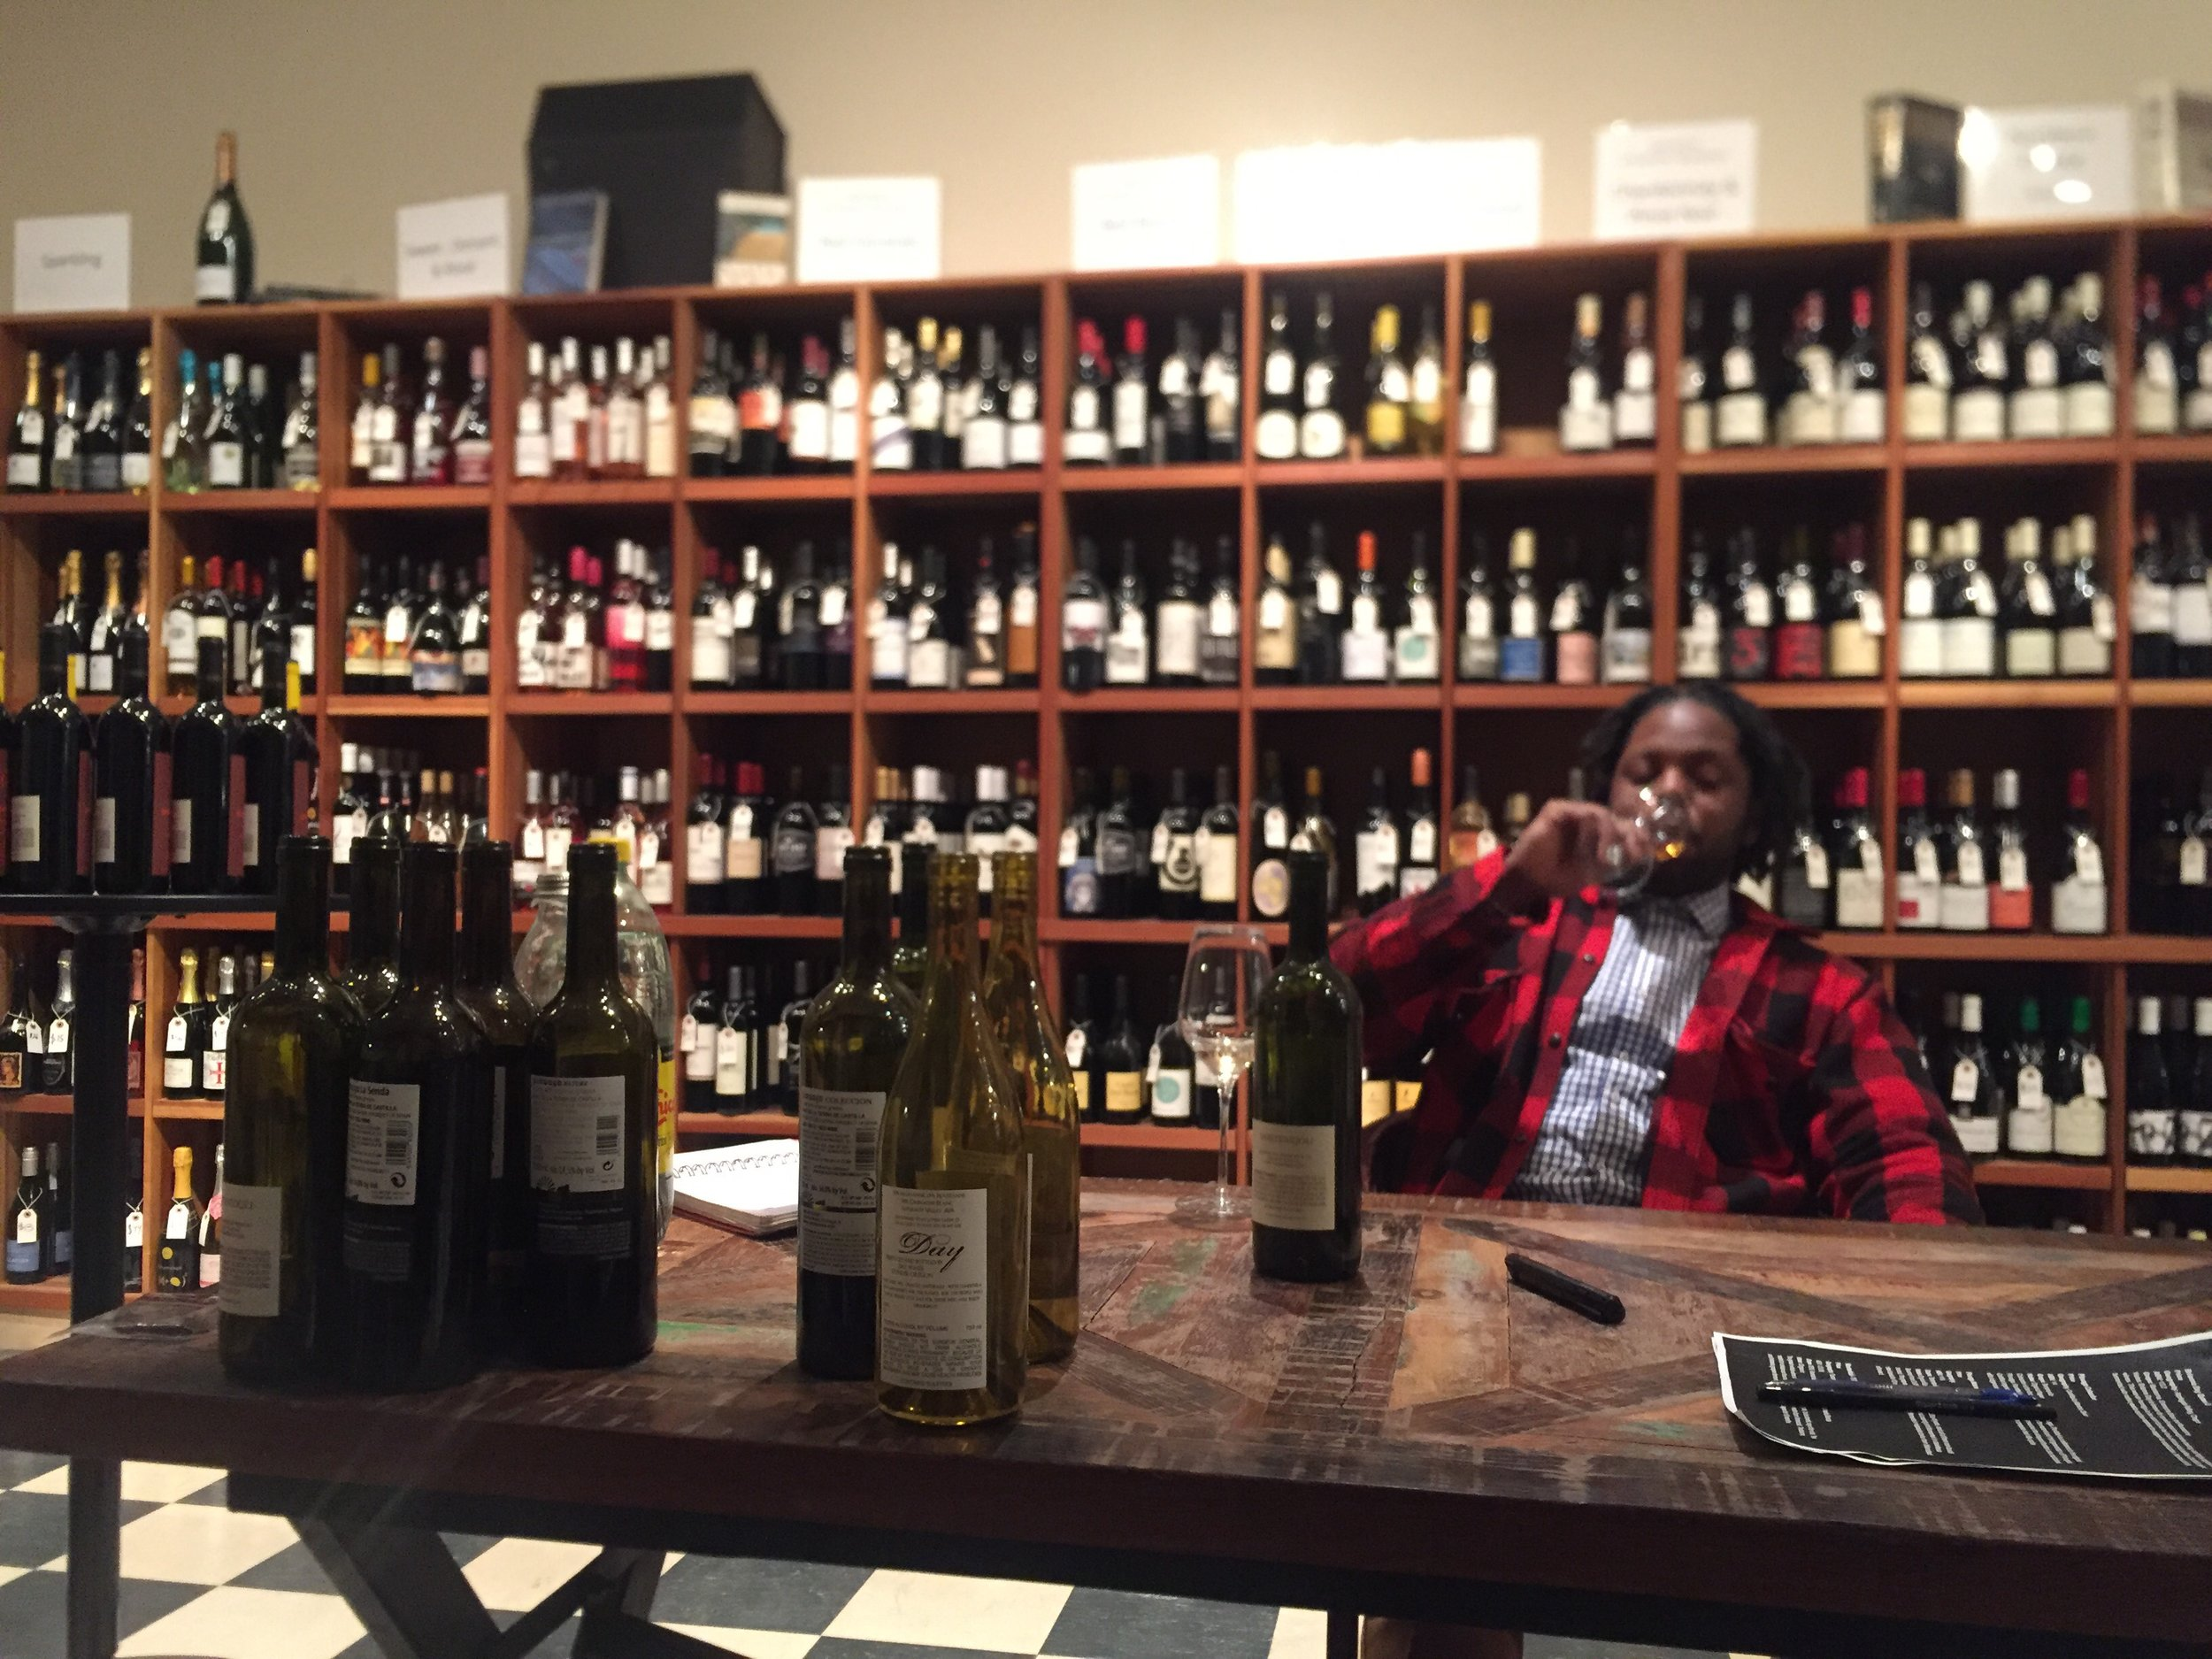 Derrick Westbrook is the Official Wine Buyer and Sommelier at 57th Street Wines